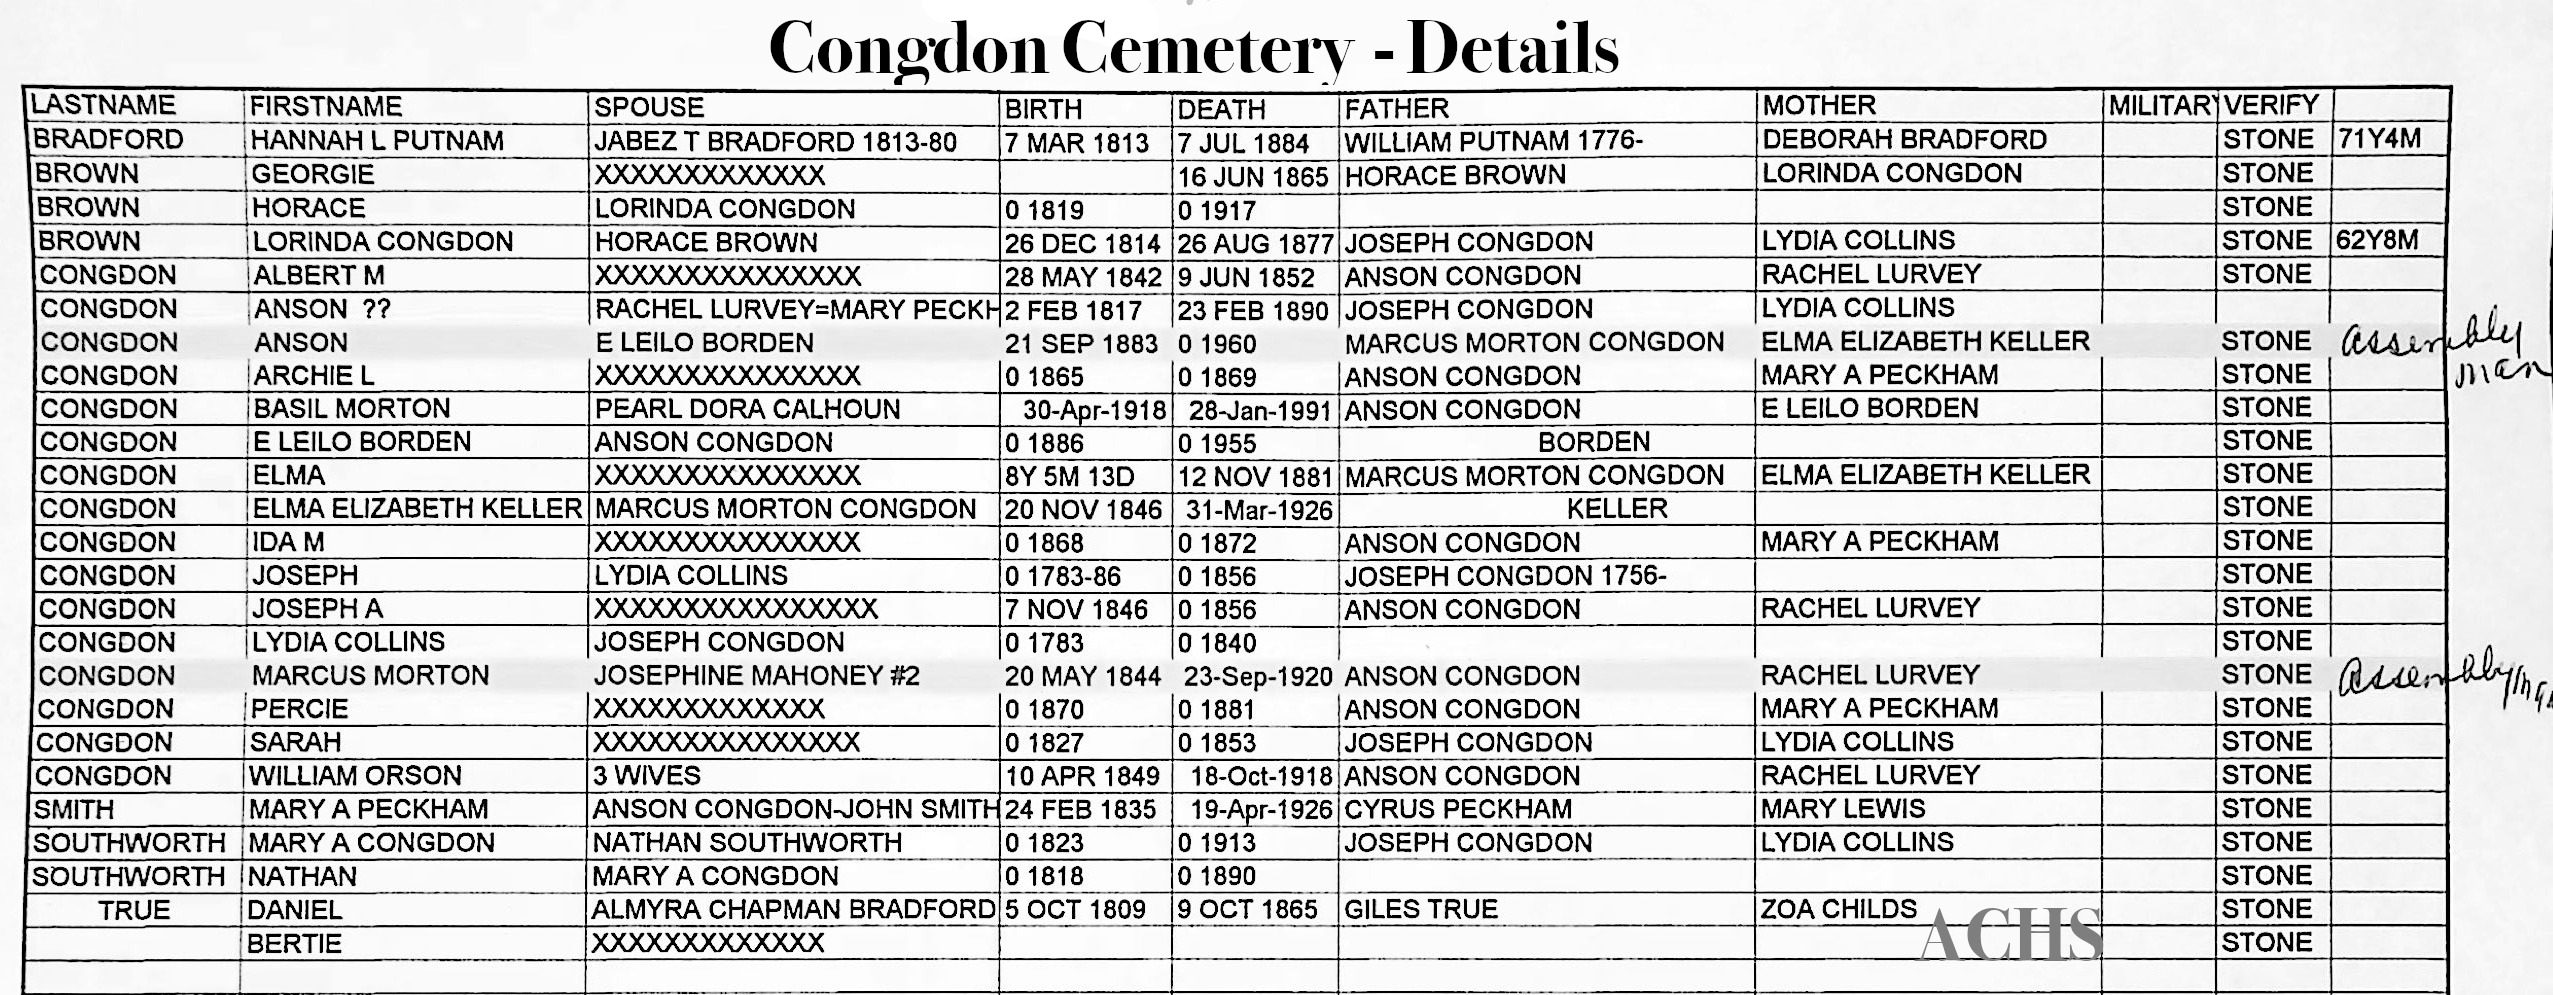 Congdon Cemetery - Further Details - Click on Image to Enlarge